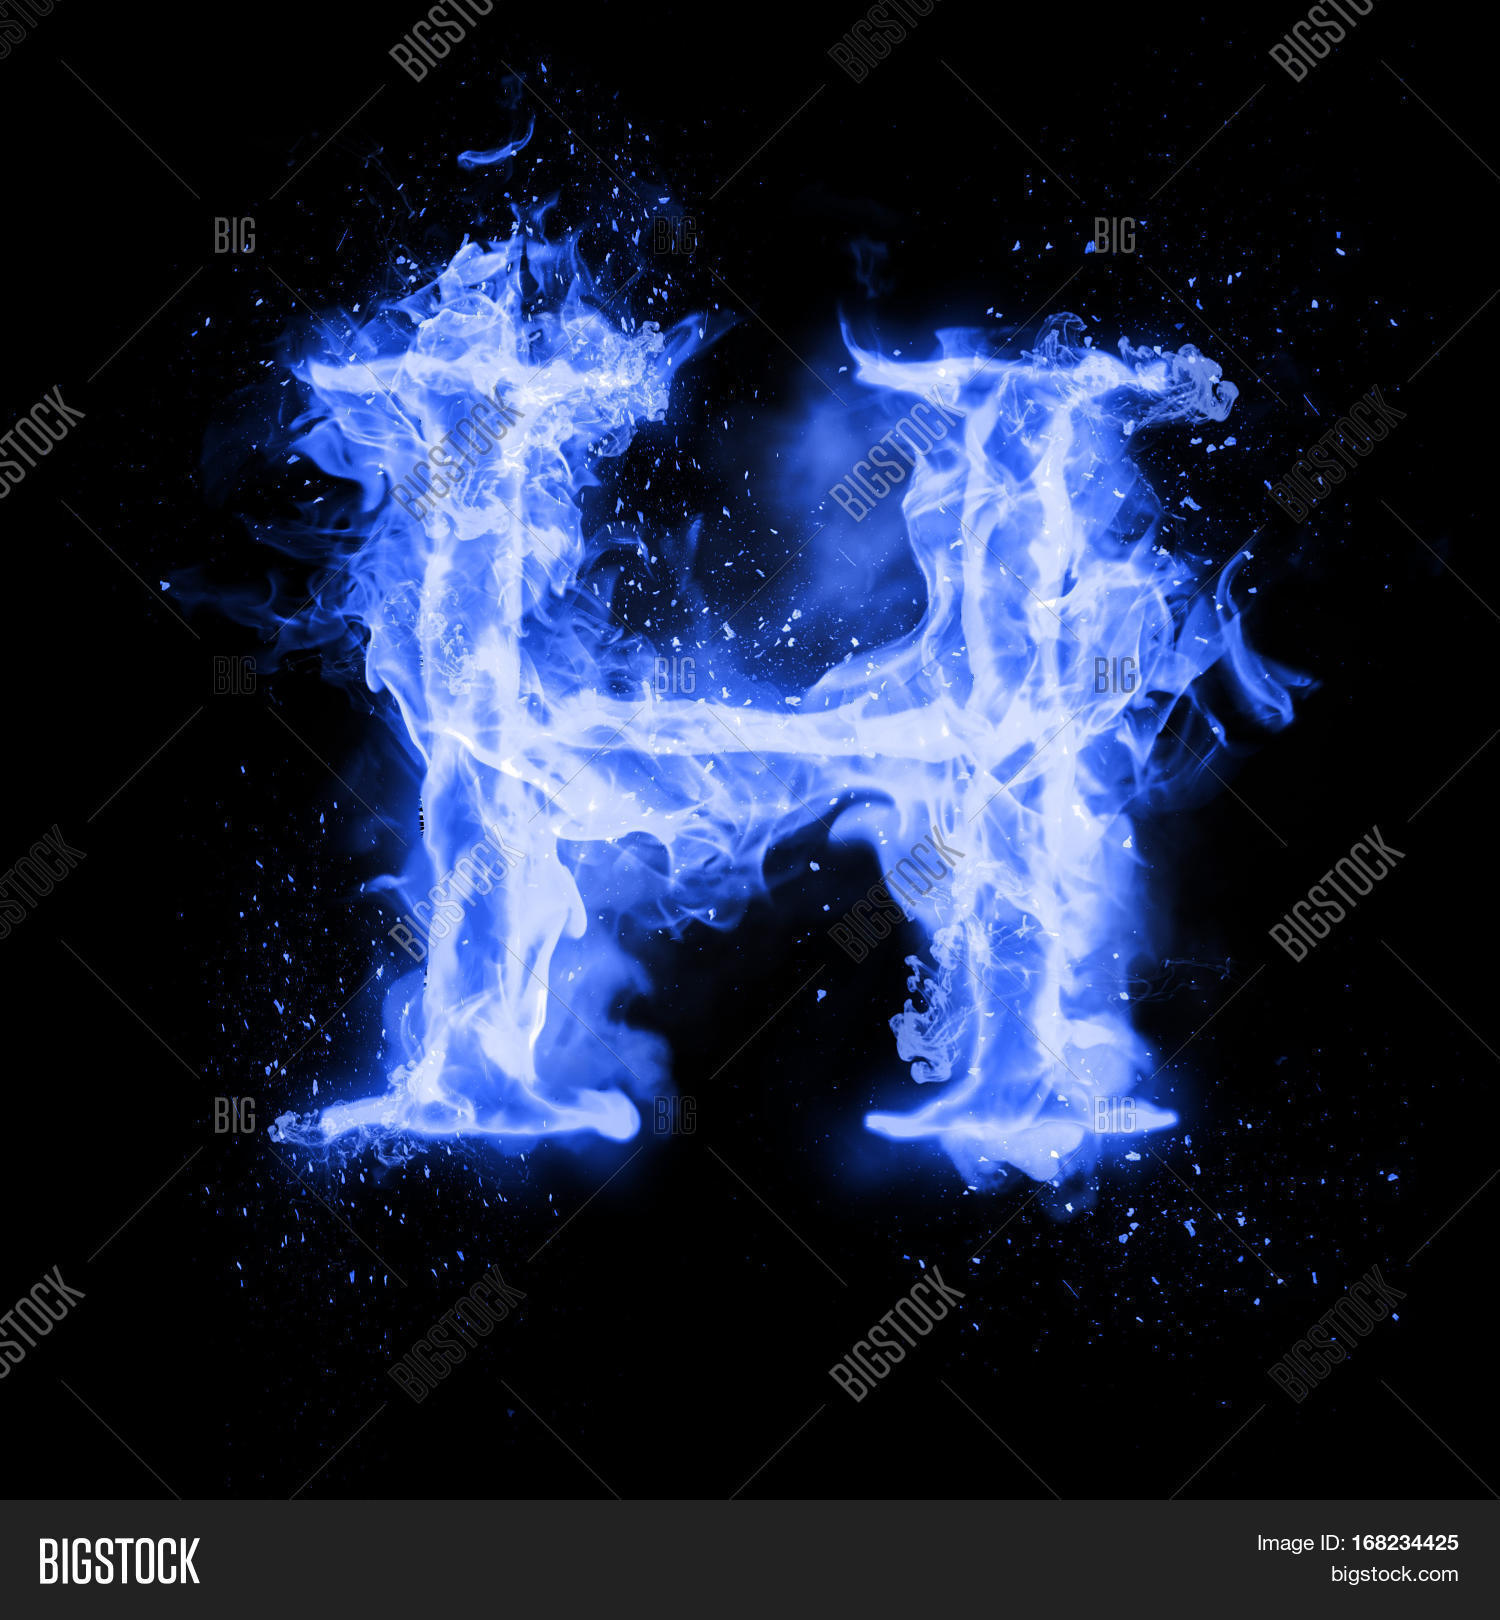 Fire Font: Letter H On A Dark Background Stock Photo, Picture And ...